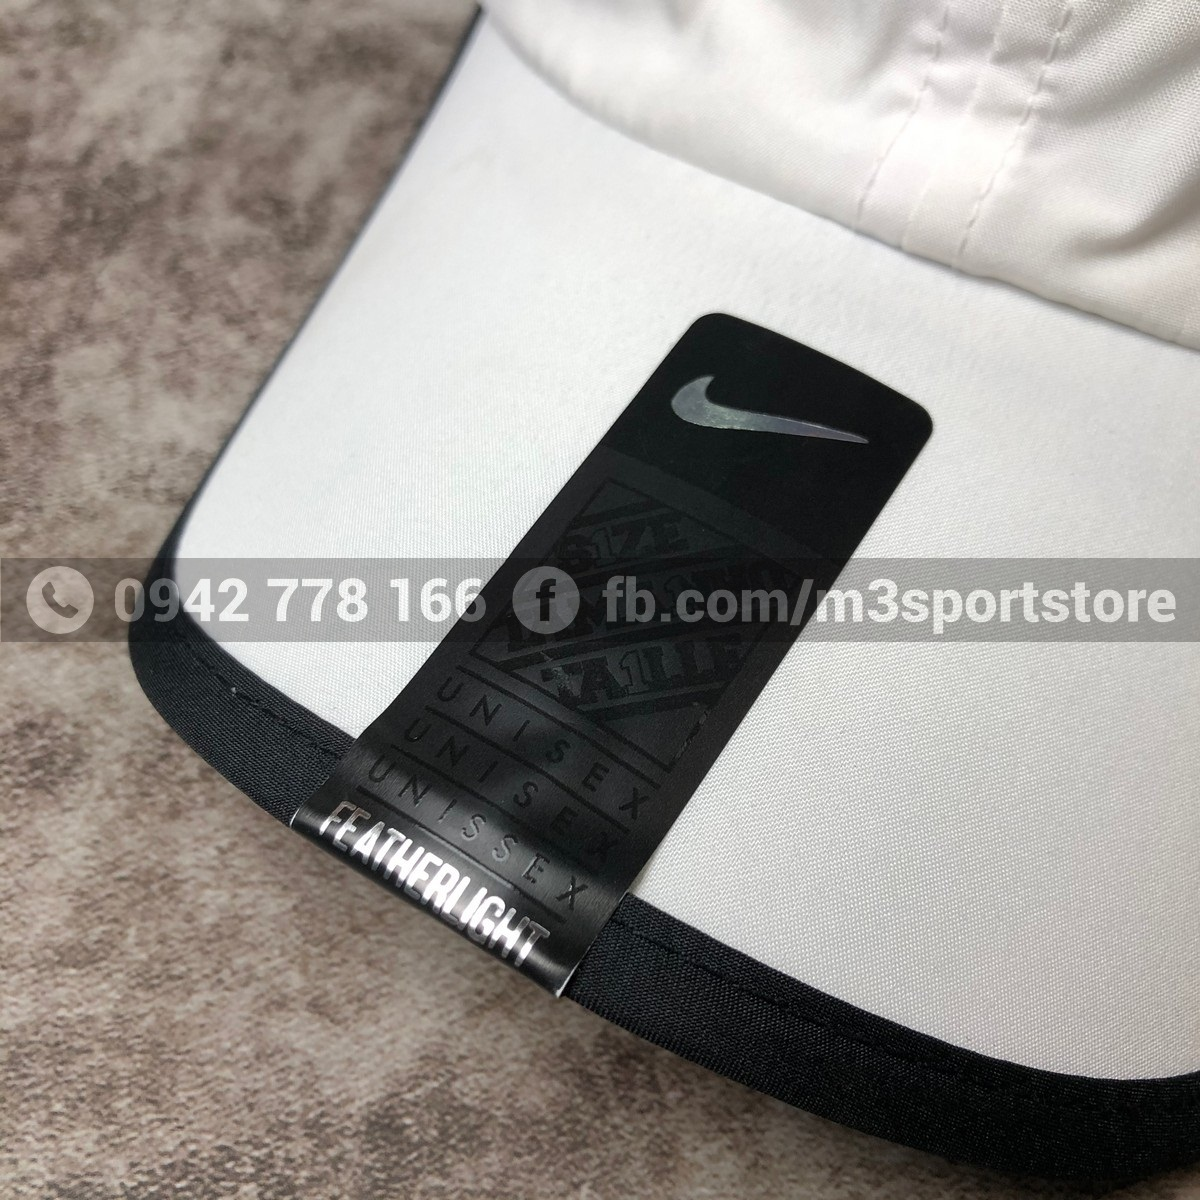 Mũ thể thao Nike Feather Light Cap 595510